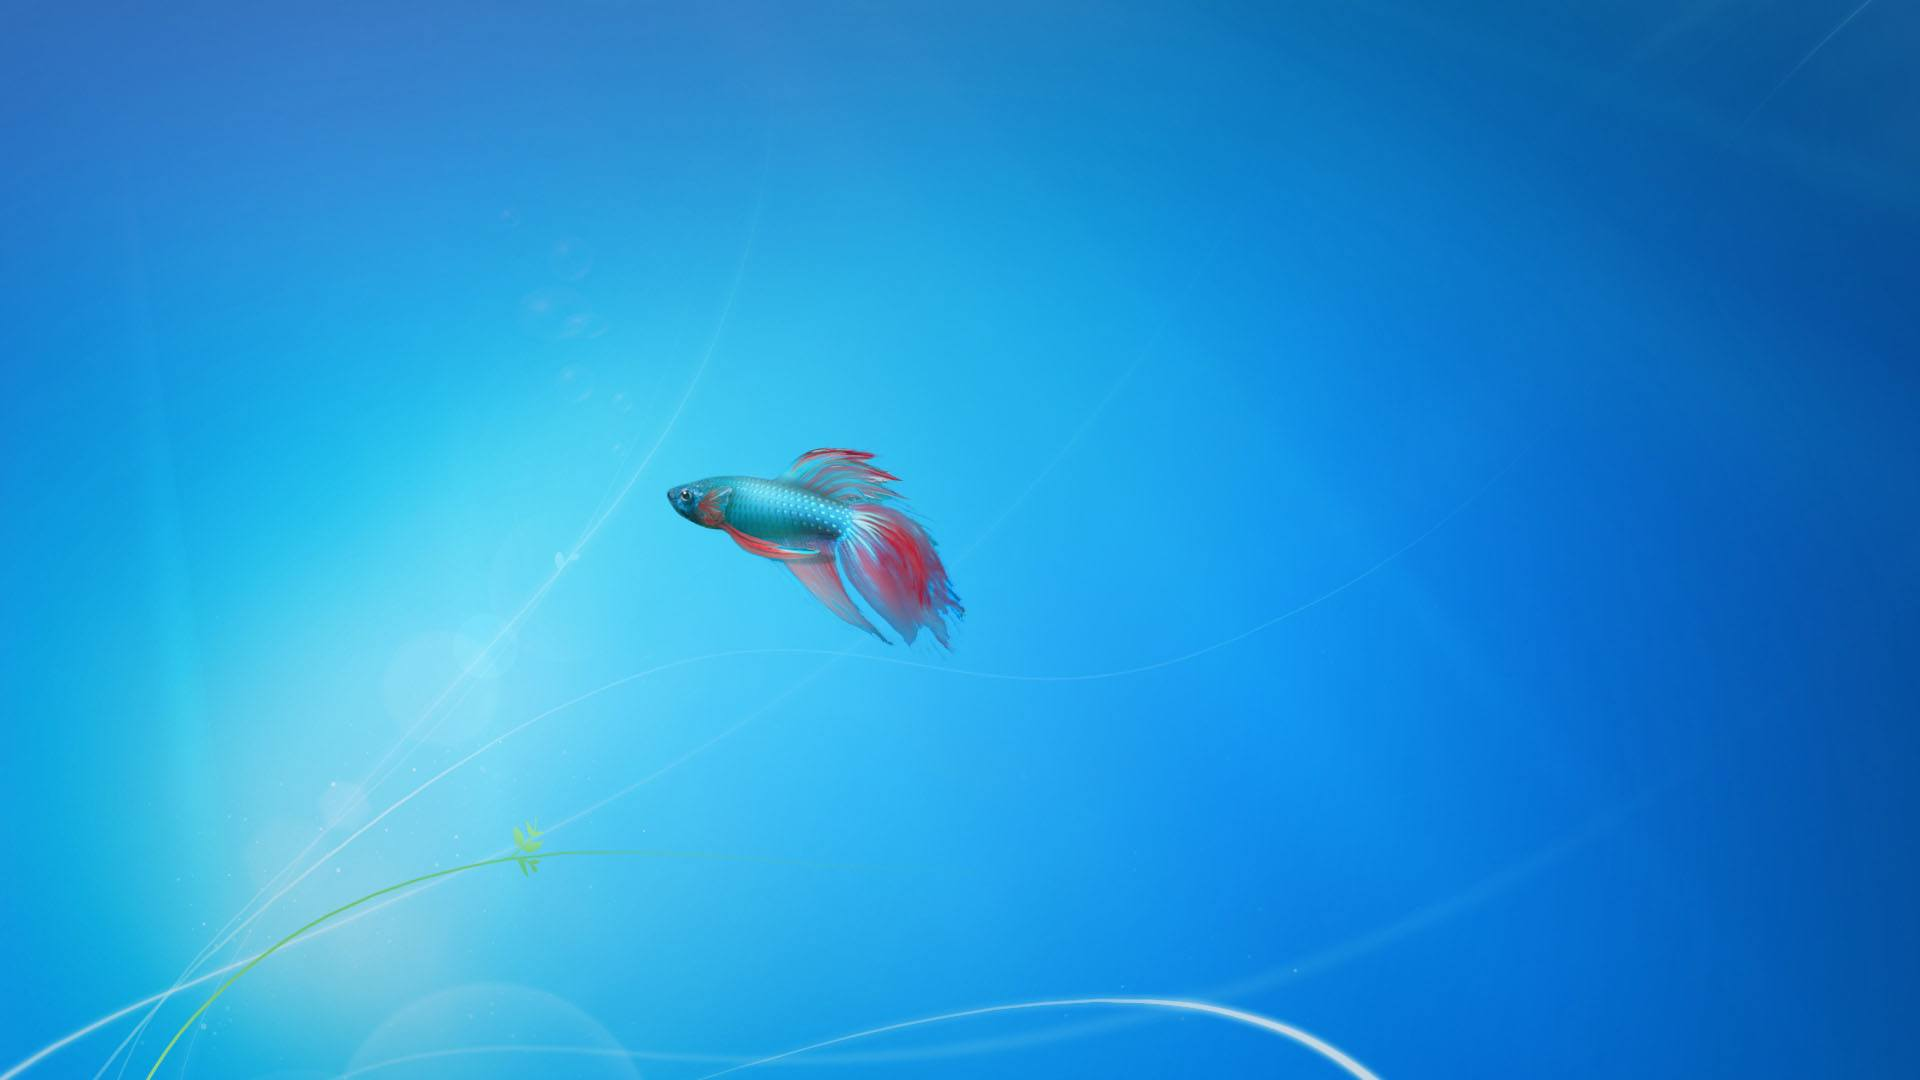 Fish Wallpaper 011